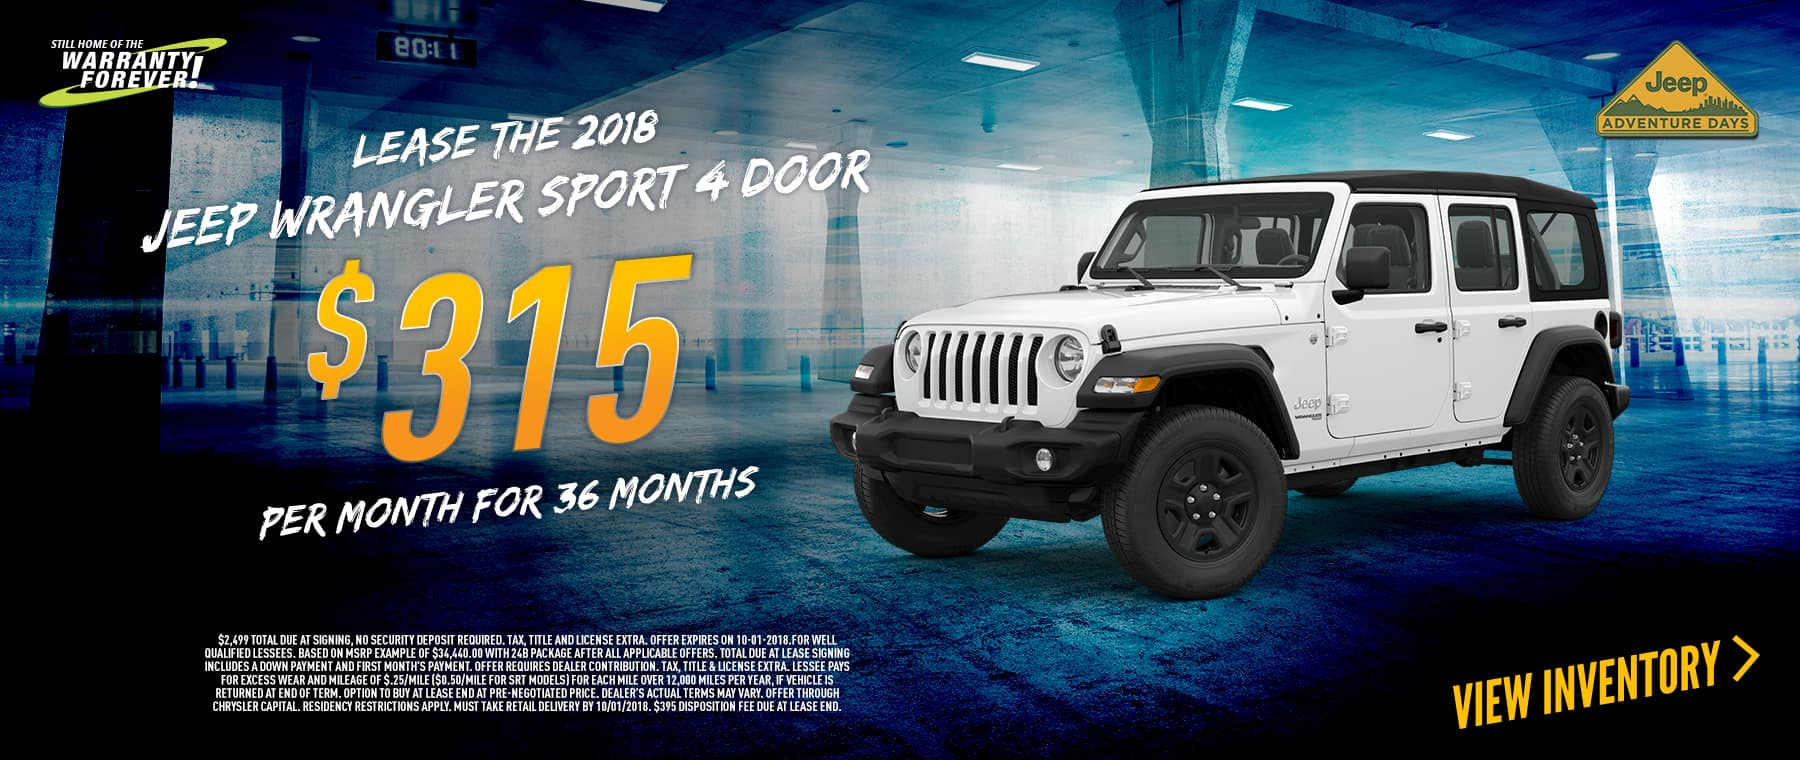 lease-jeep-wrangler-sport-315-per-month-36-months